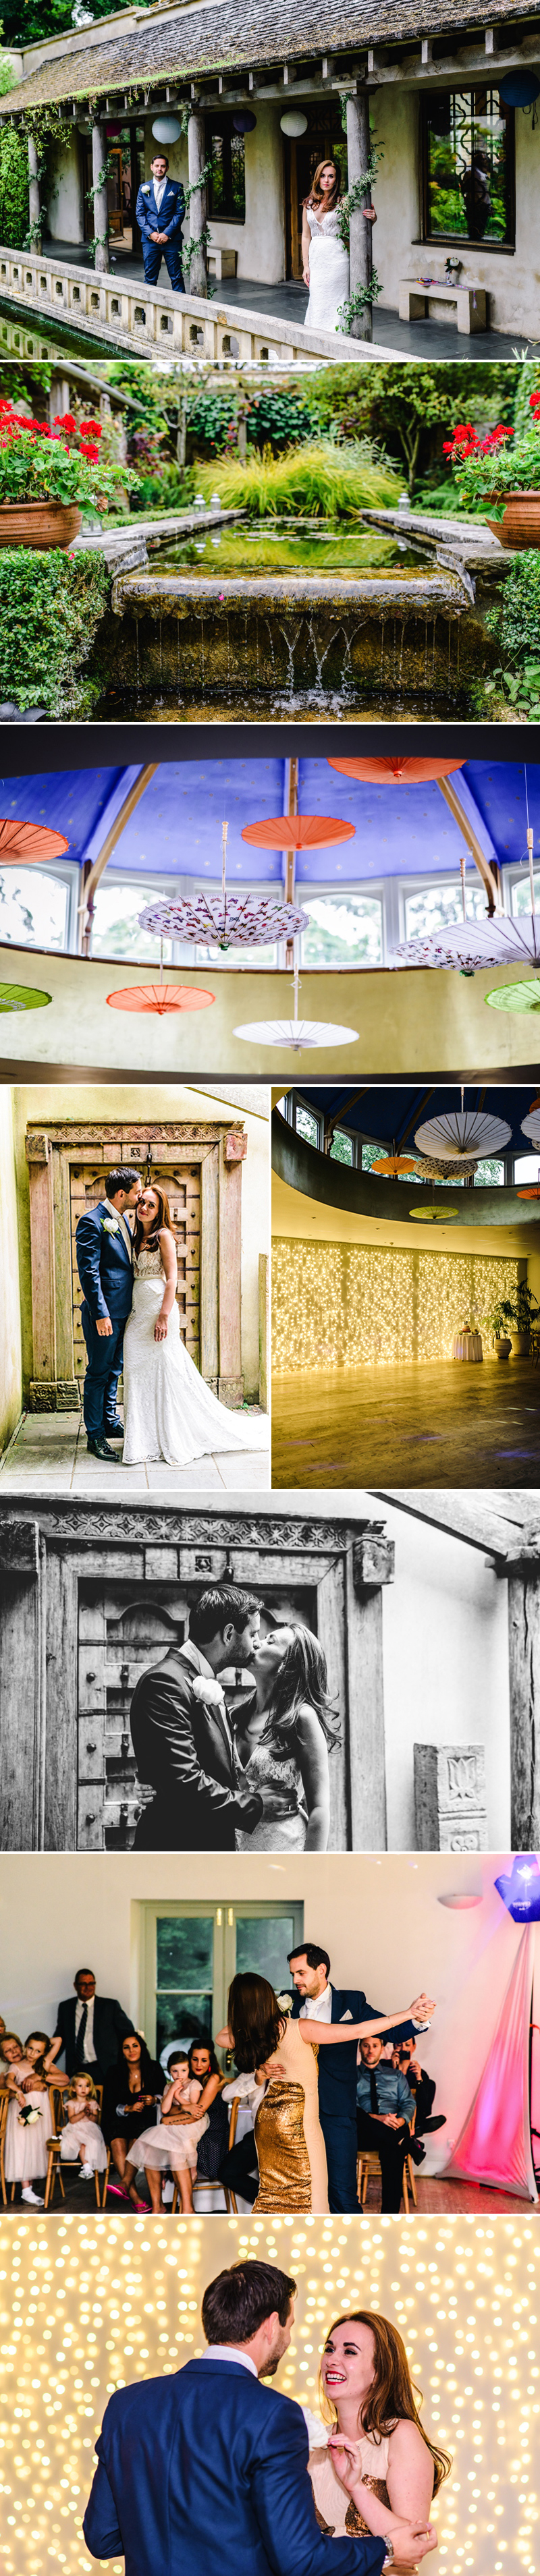 wedding-venues-in-gloucestershire-matara-centre-big-eye-photography-006